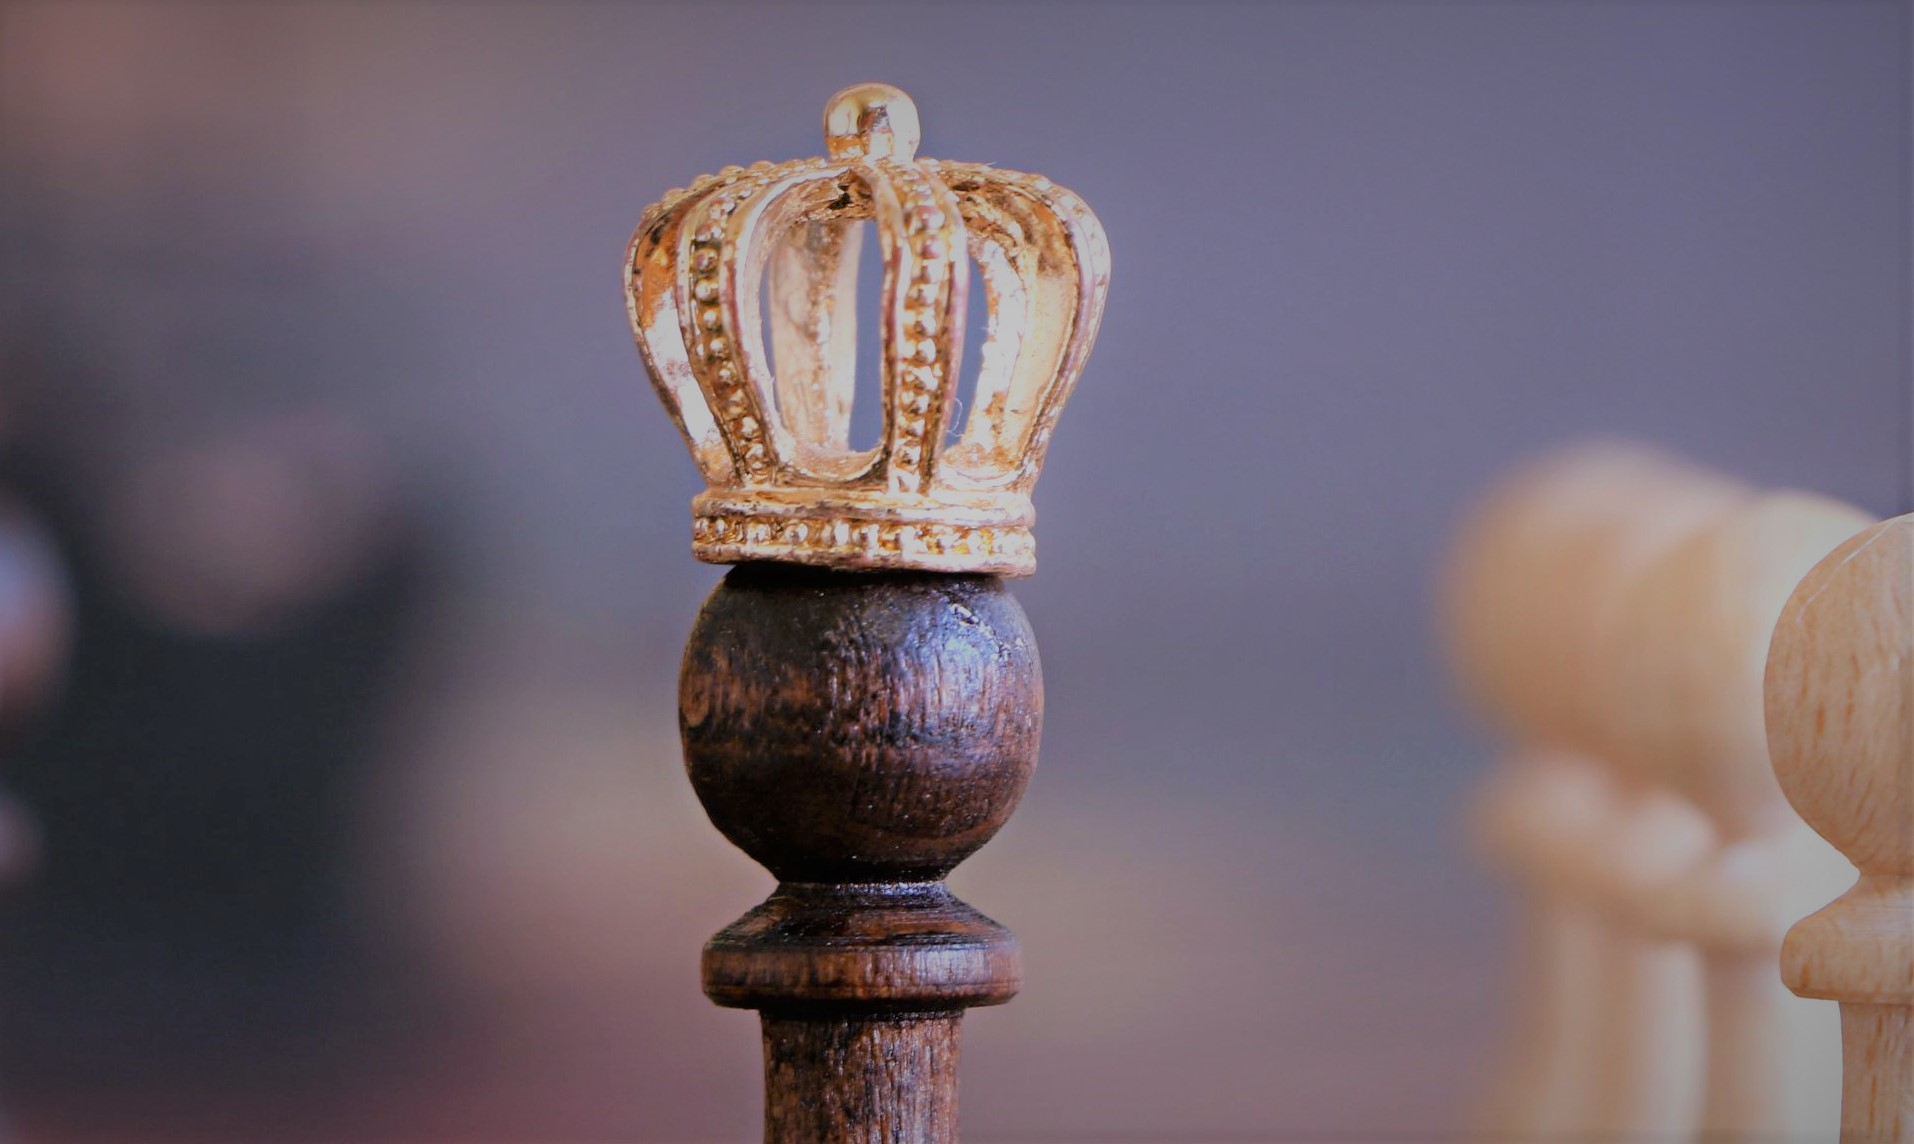 The crown is not that heavy